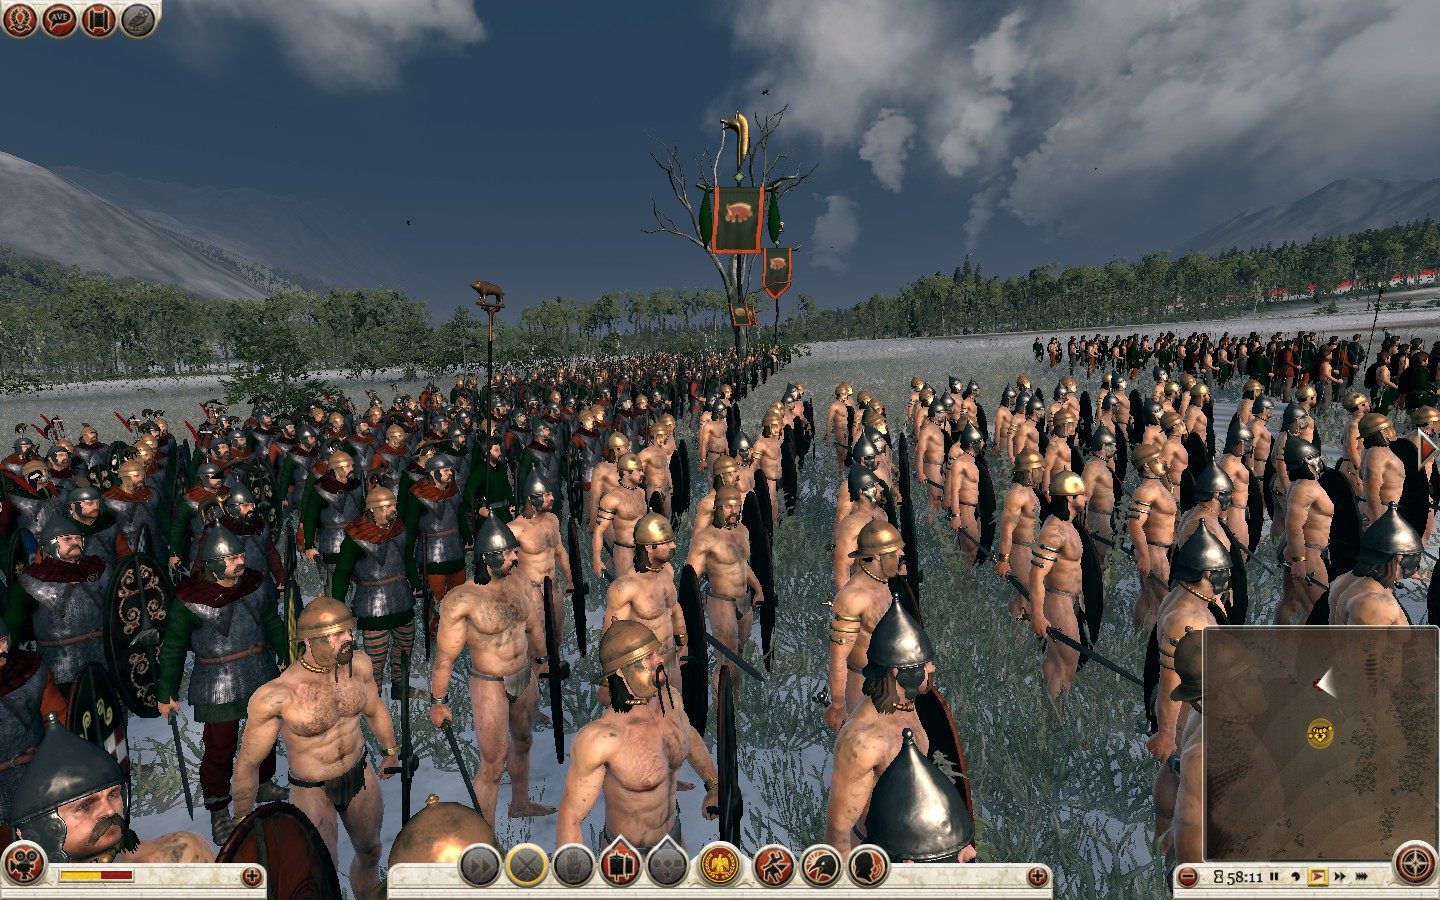 Rome ii sex mod exposed thumbs